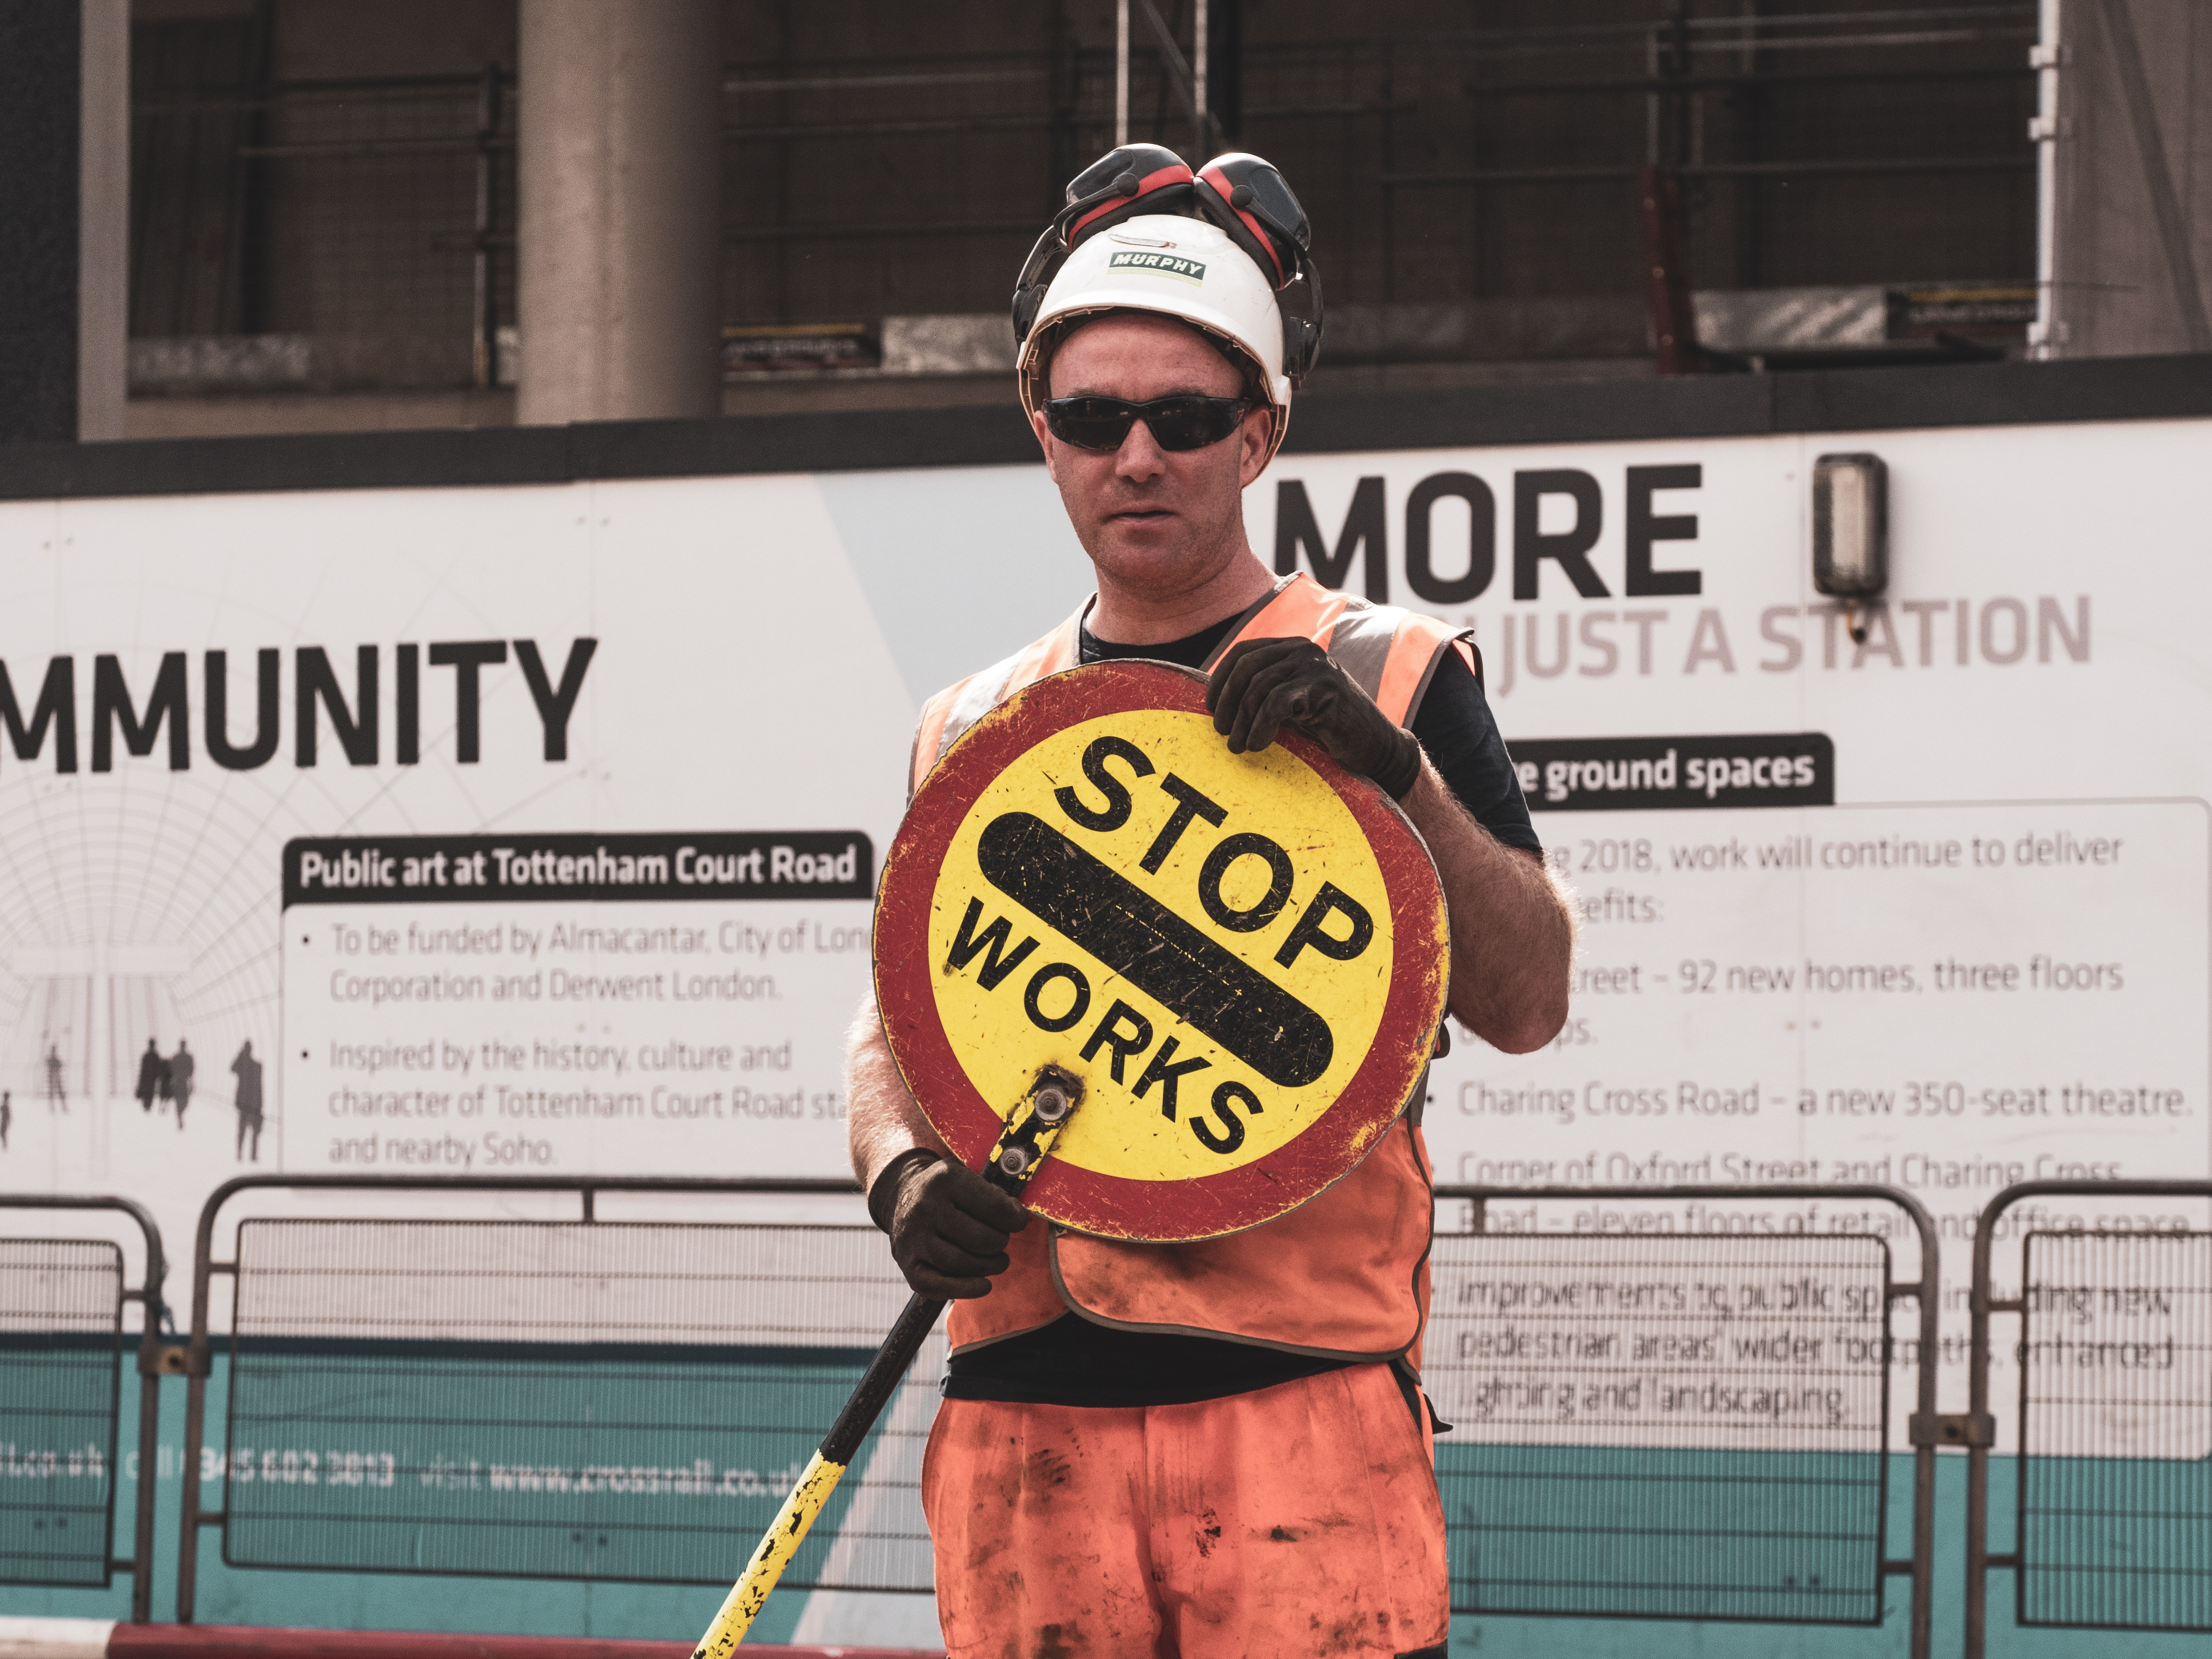 person holding Stop Workers signage